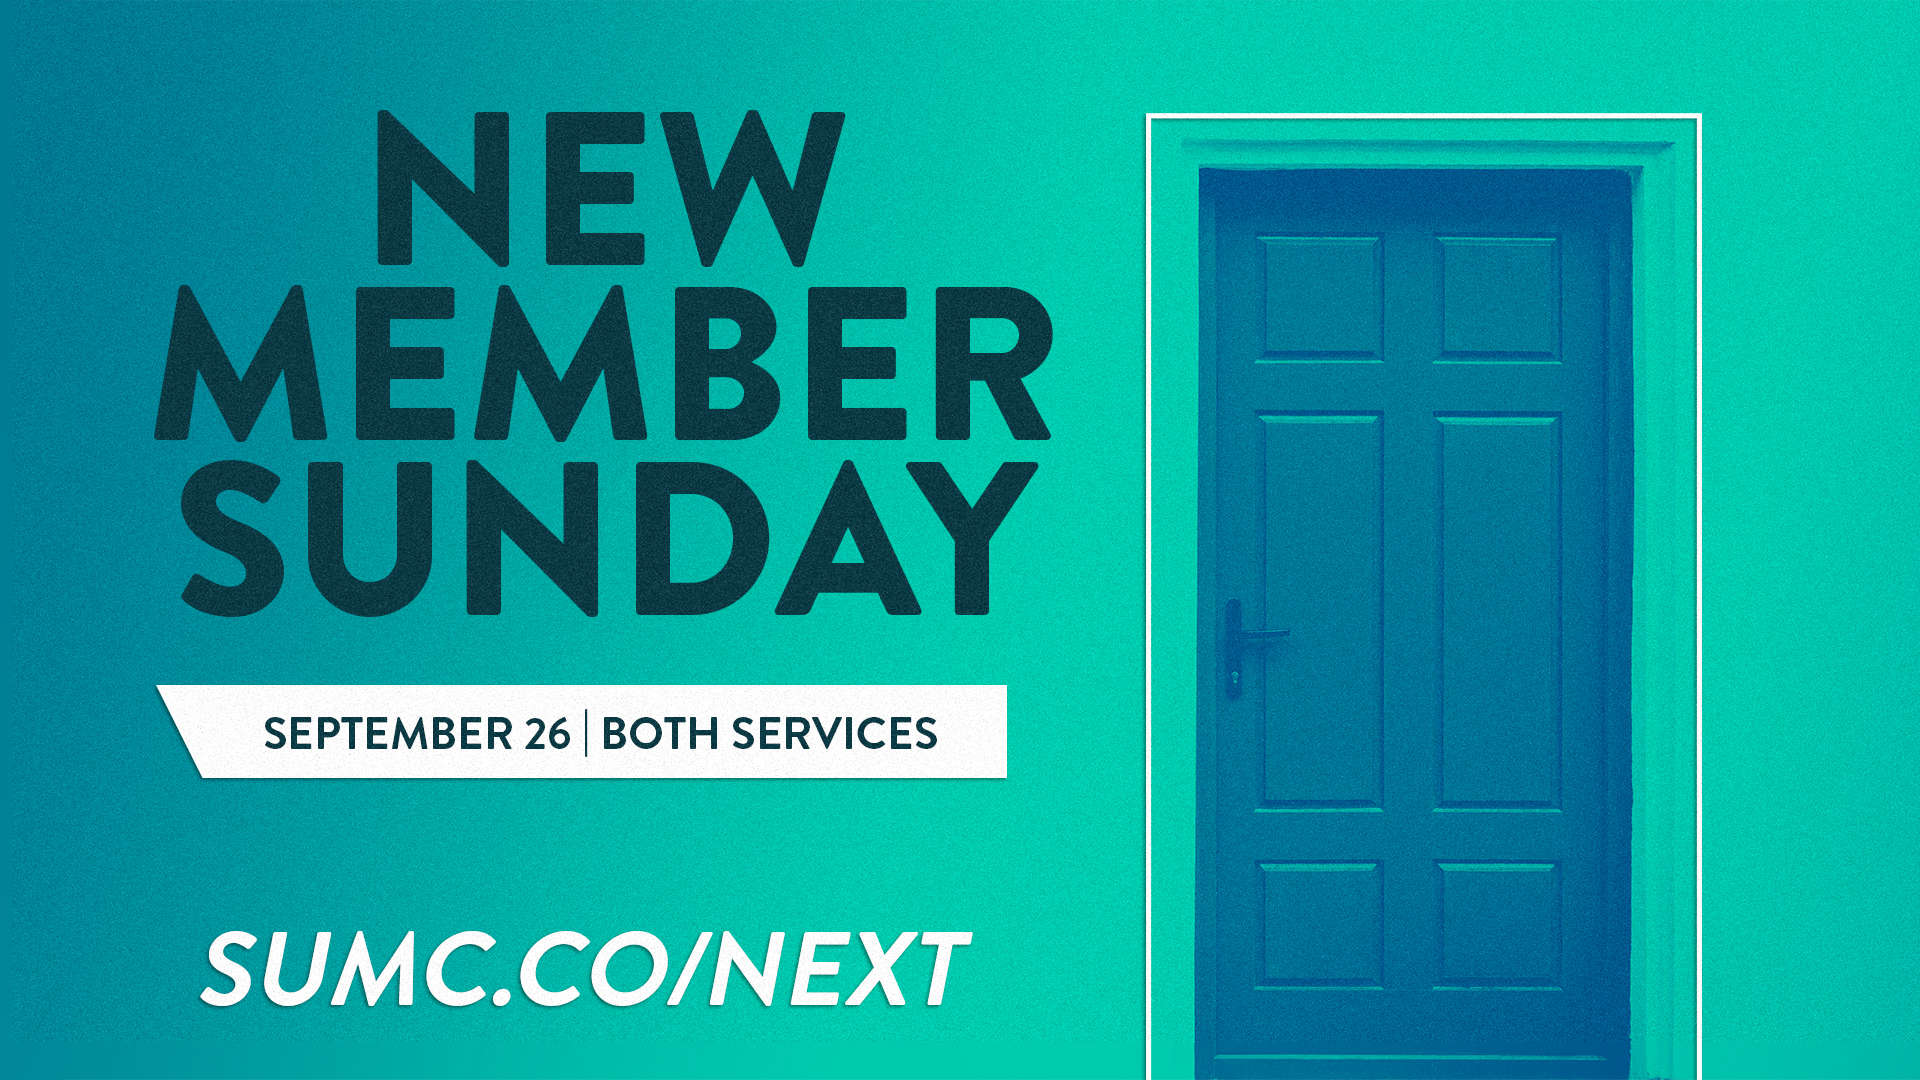 Promotional Graphic for New Member Sunday